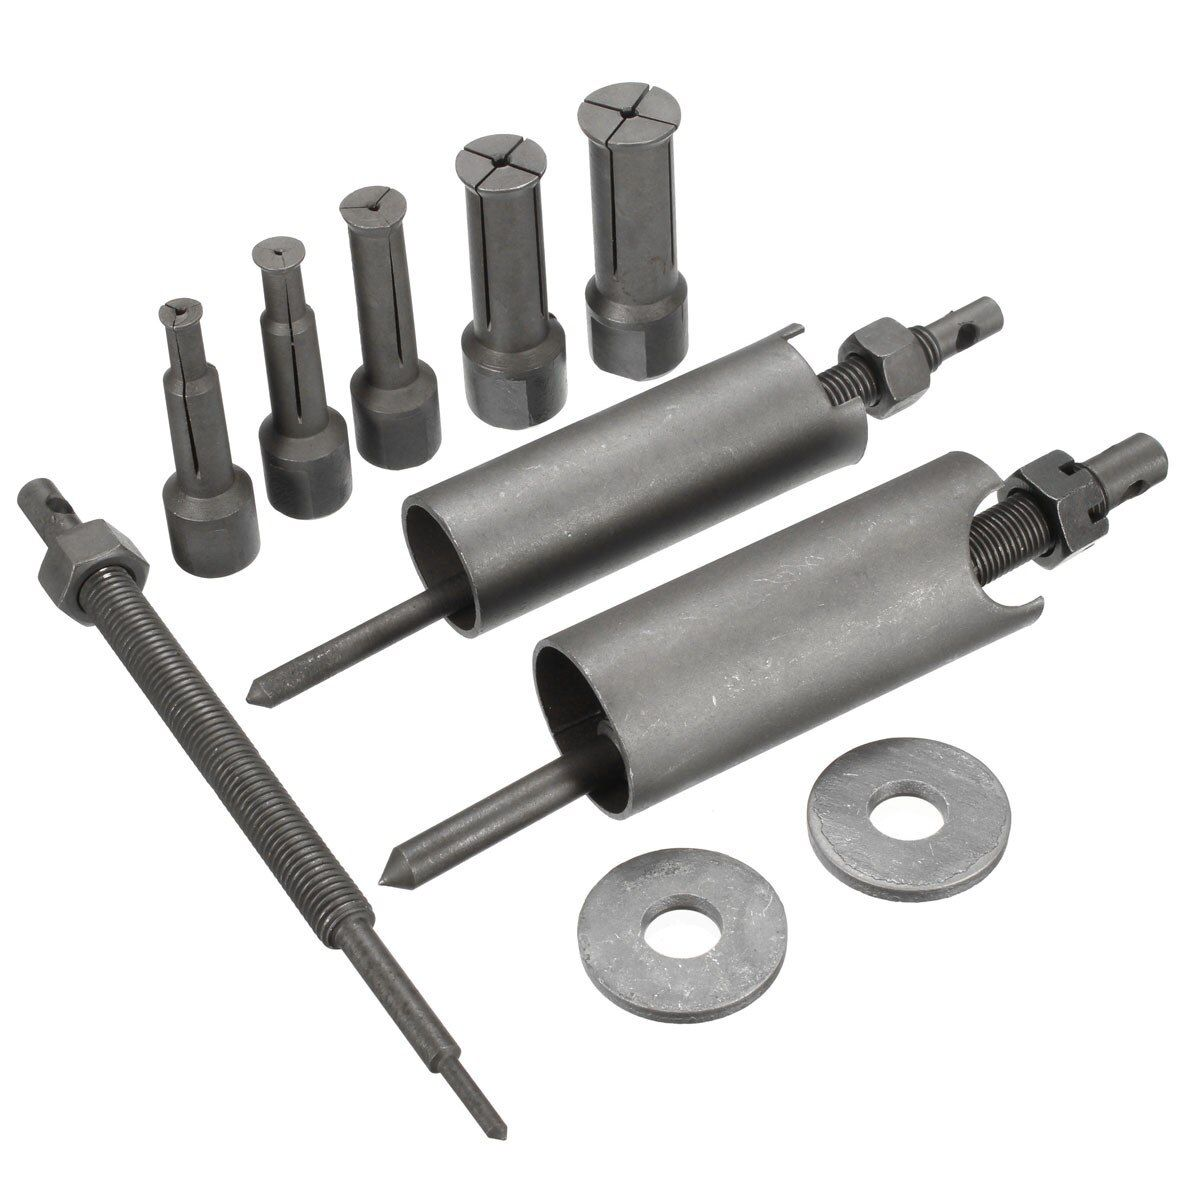 1 Set Inner Bearing Puller Tool Remover Kit For Car Auto Motocycle From 9mm to 23mm Diameter